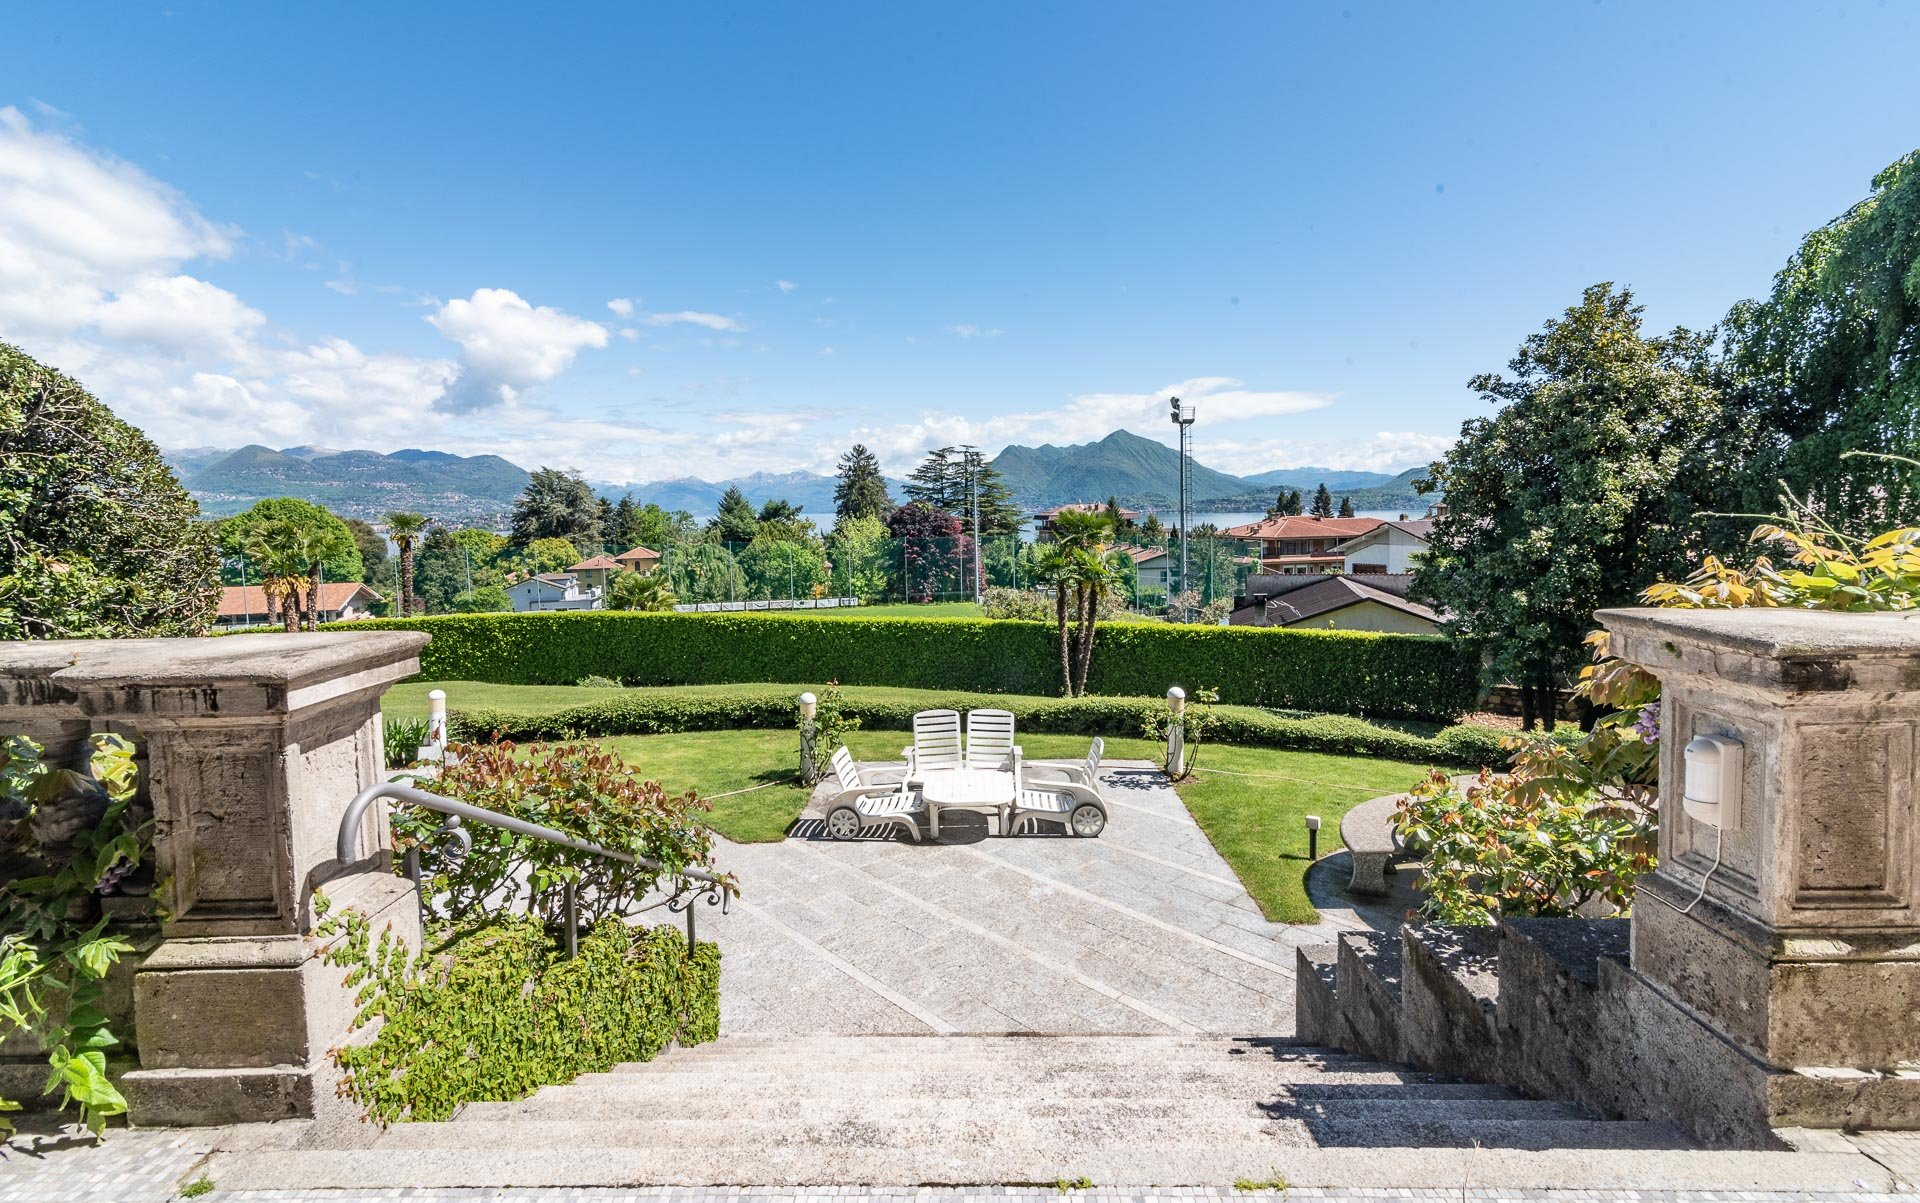 Luxurious apartment for sale in a villa in Stresa - view